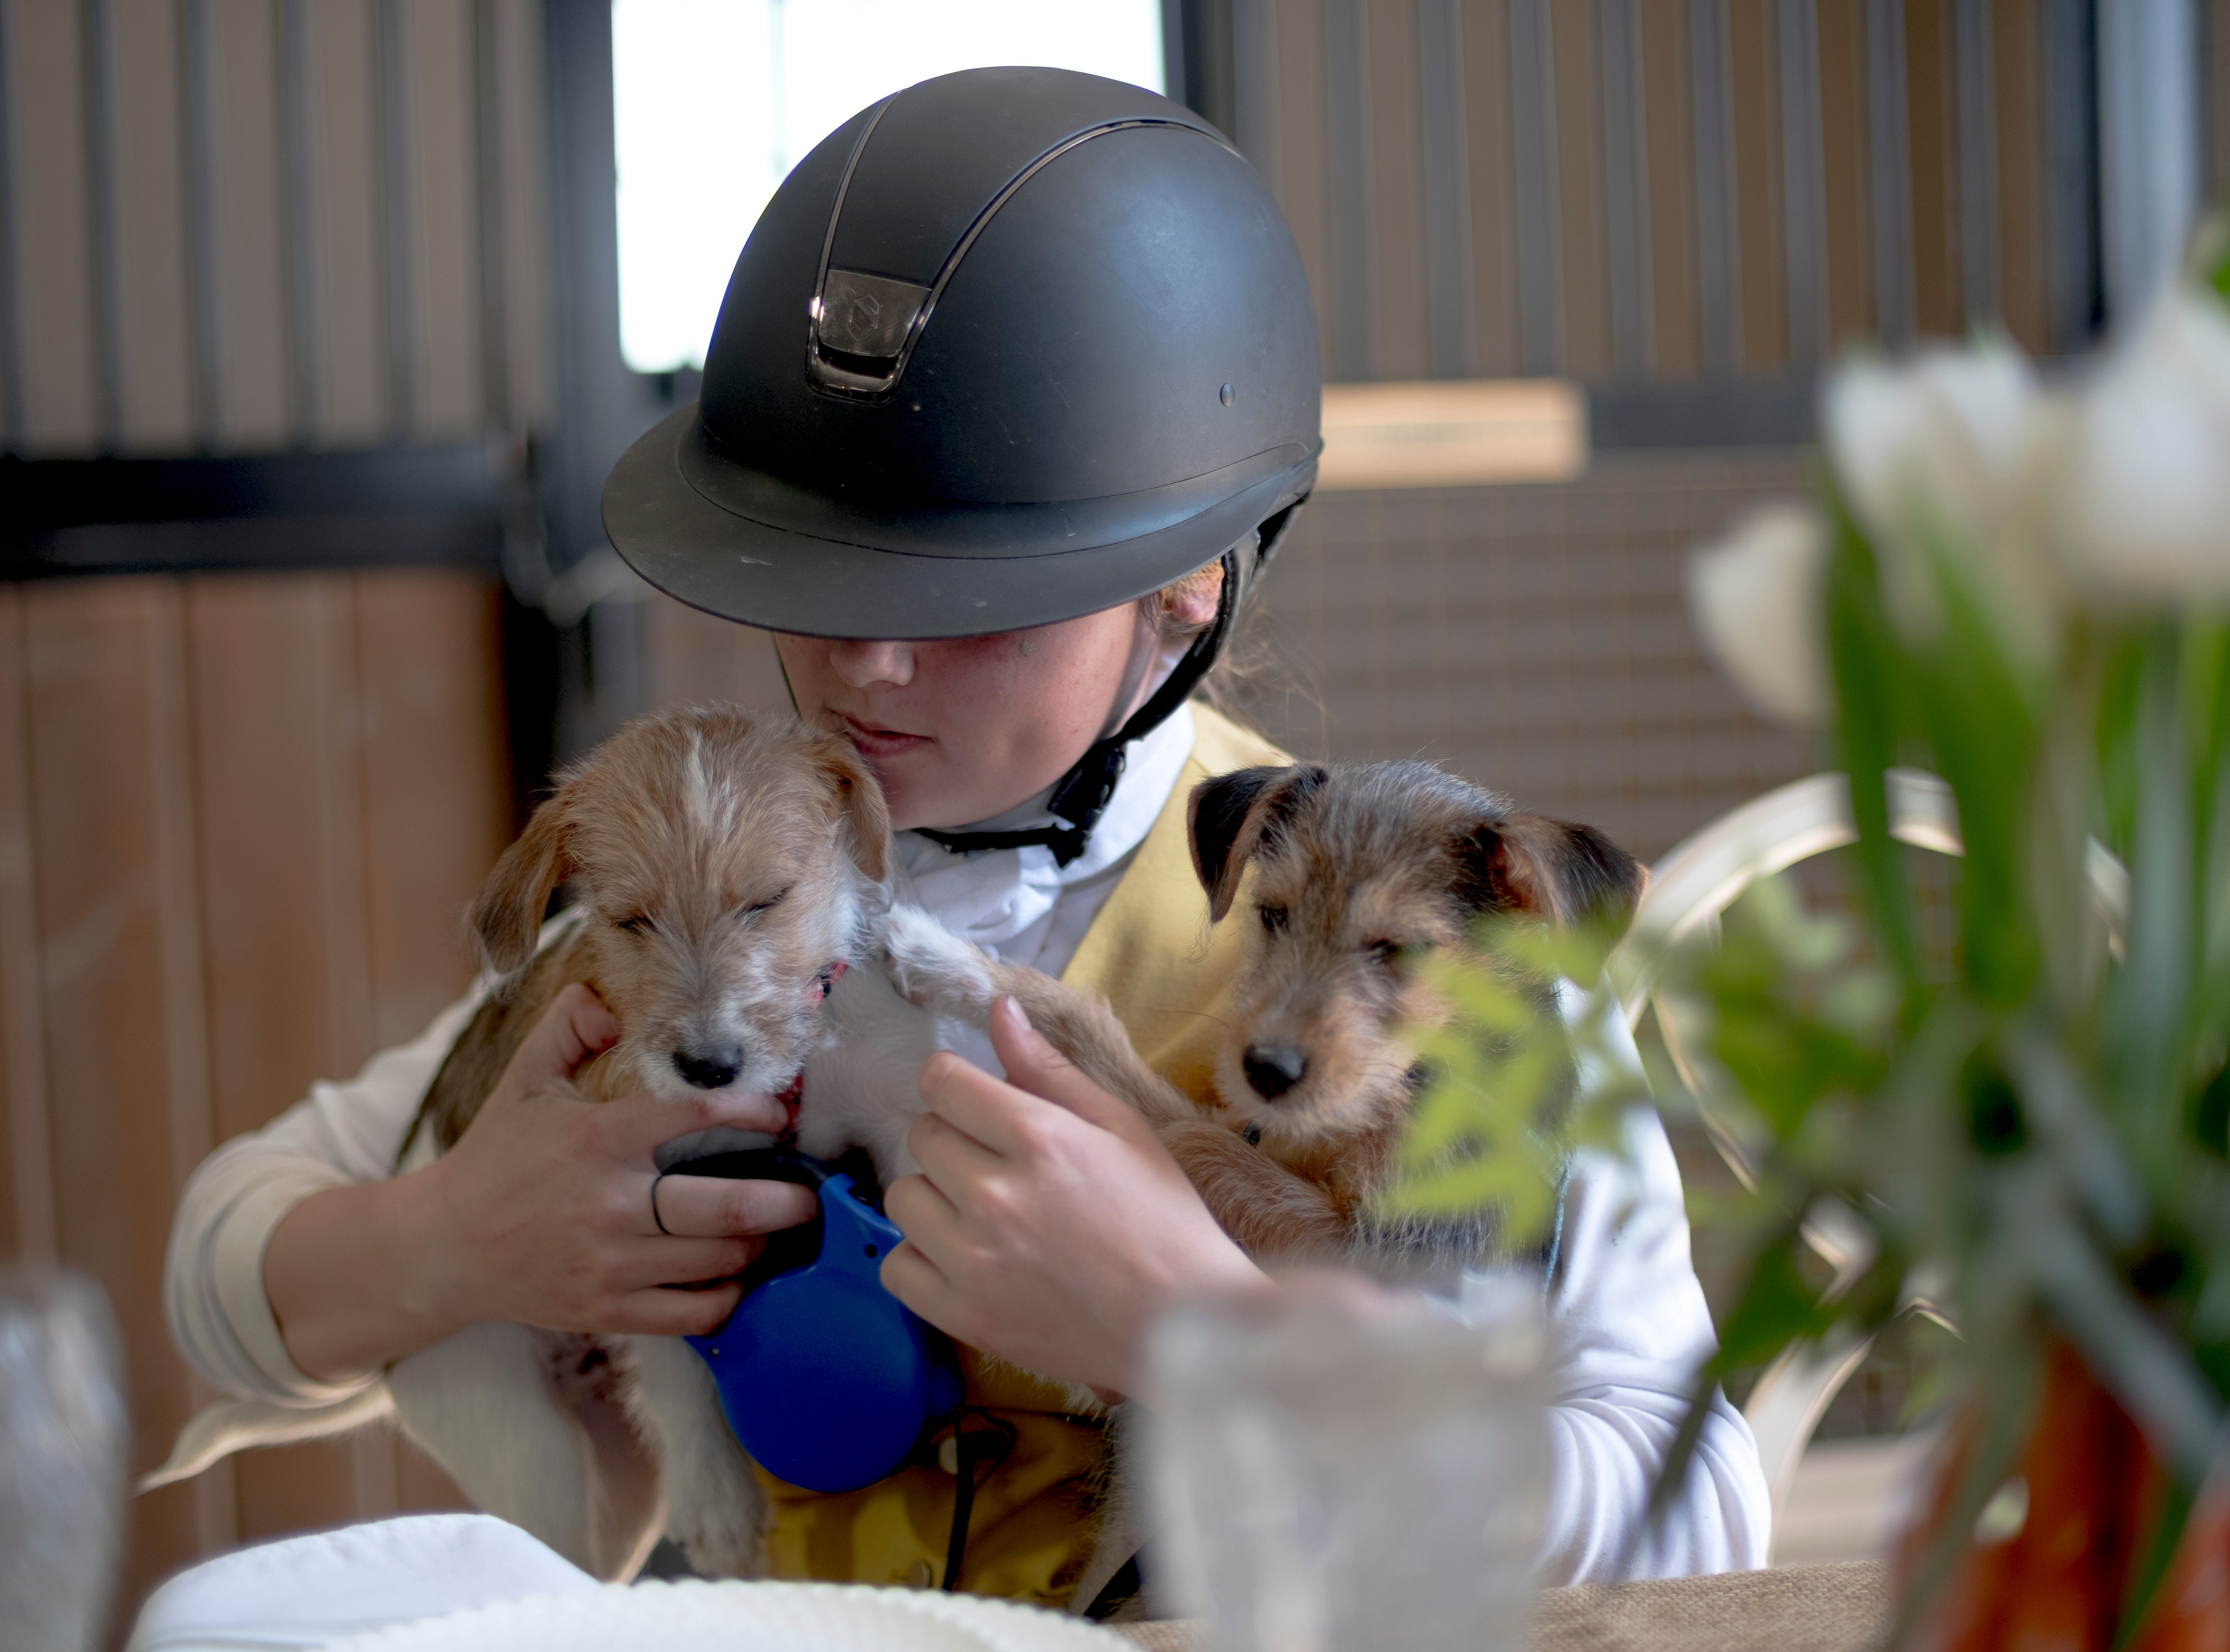 Marley Spears, 15, of Knoxville, plays with her hunt terrier puppies Jack and Olive during a fixture at Blackberry Ridge Farm in Greeneville, Tennessee on Saturday, March 30, 2019.